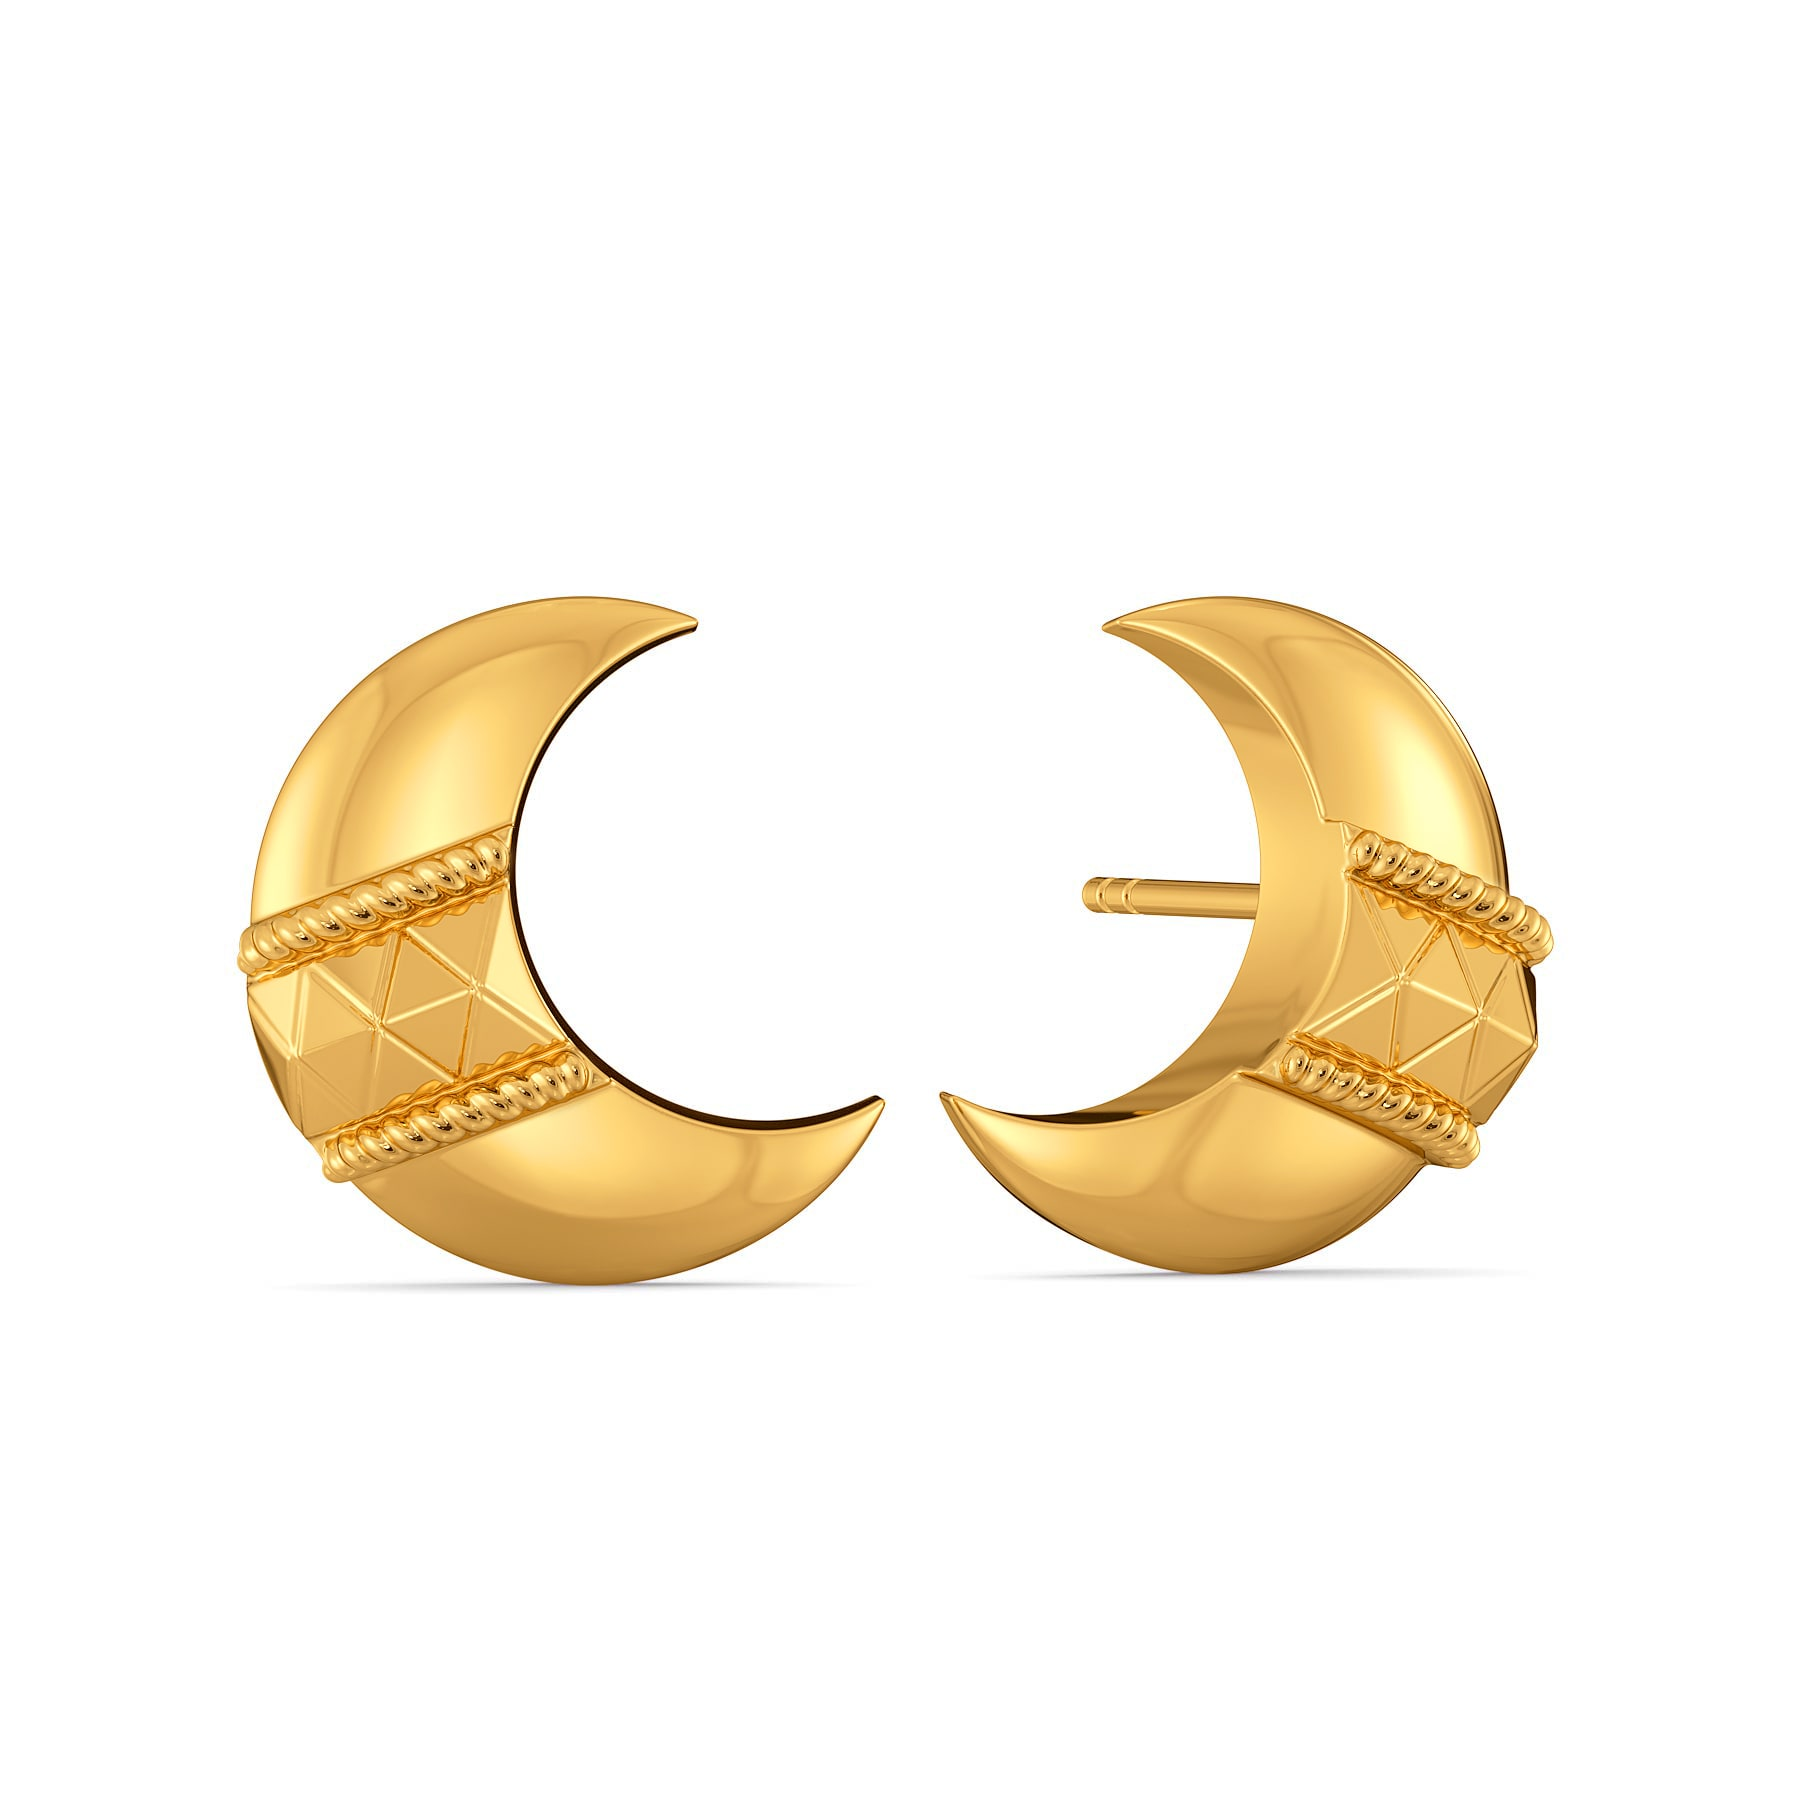 Comfy Volumes Gold Earrings